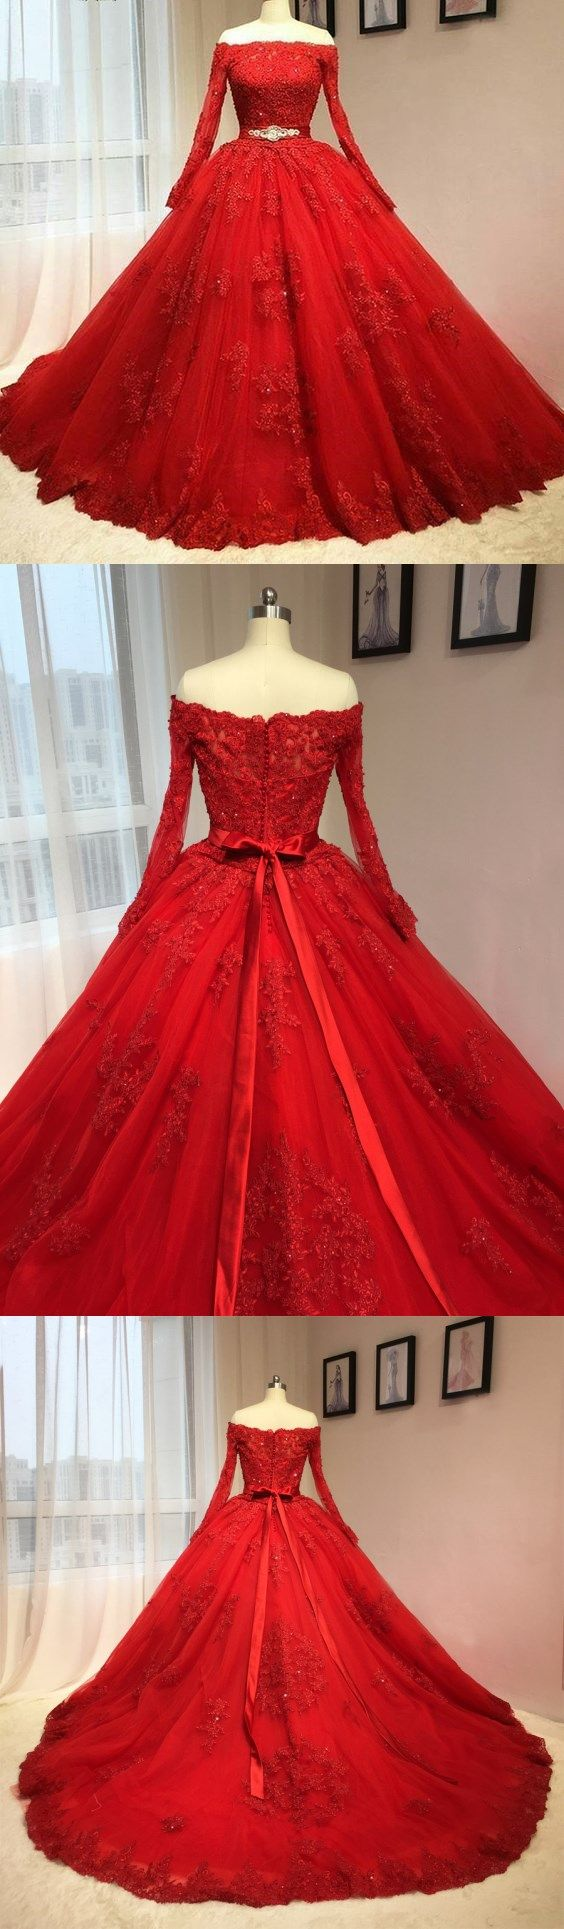 Pin by rajendra pakhrin on fashion ideas pinterest red lace prom